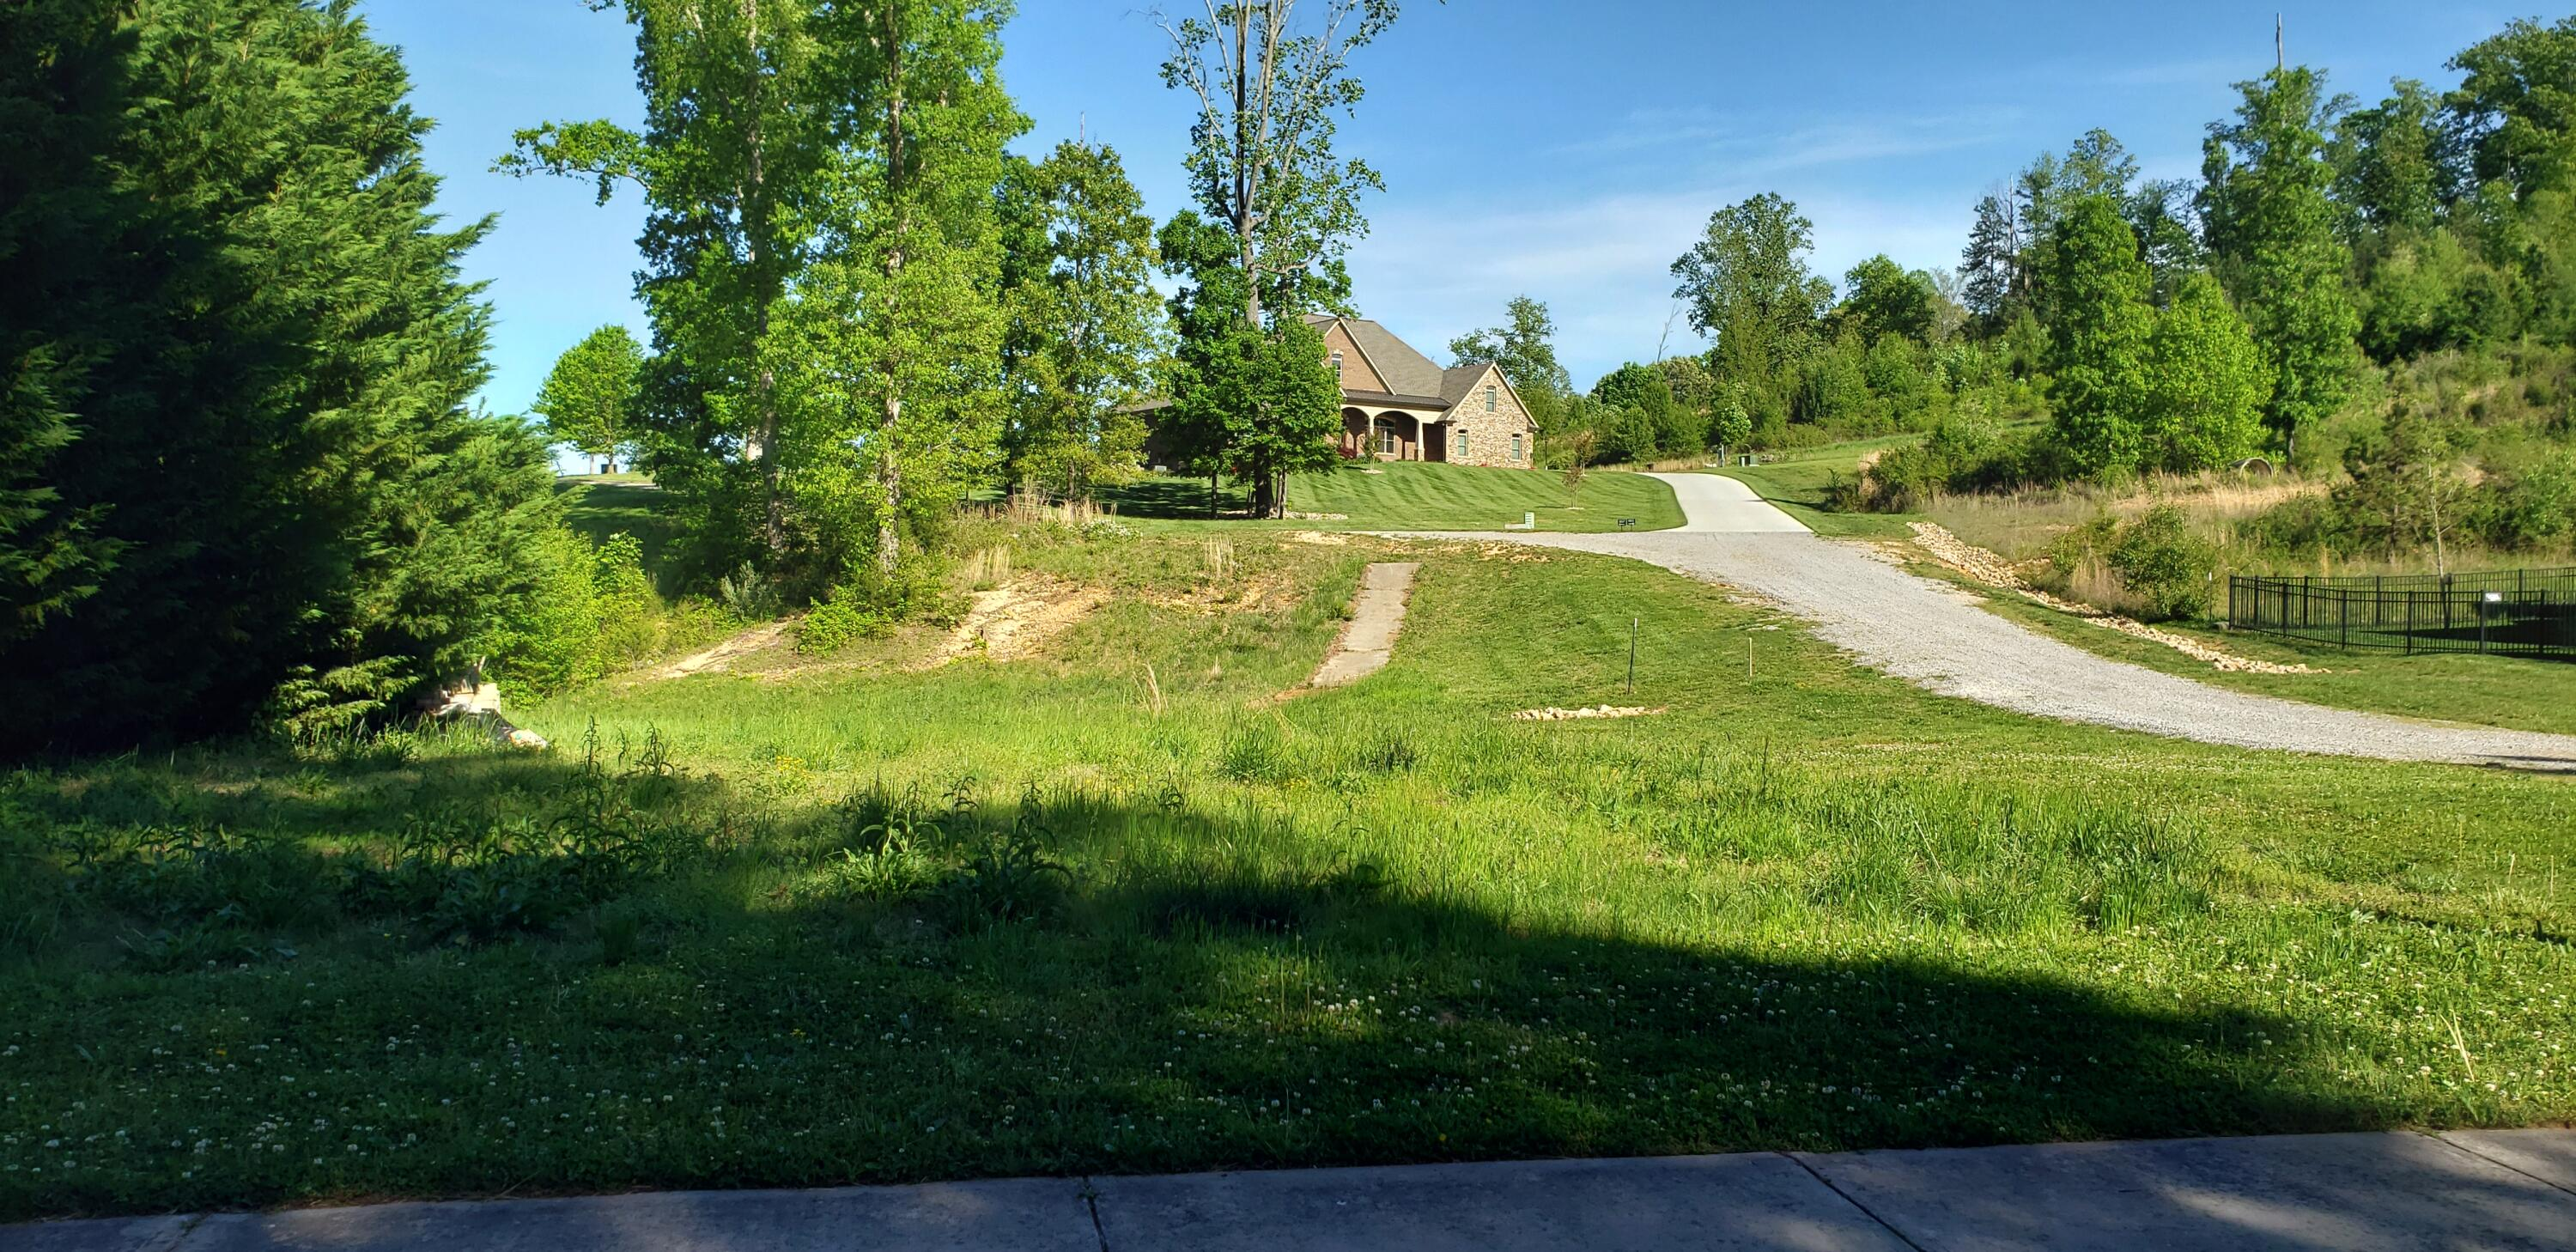 811 Green Meadows Lane, Lenoir City, Tennessee 37771, ,Lots And Land,For Sale,811 Green Meadows Lane,1151448